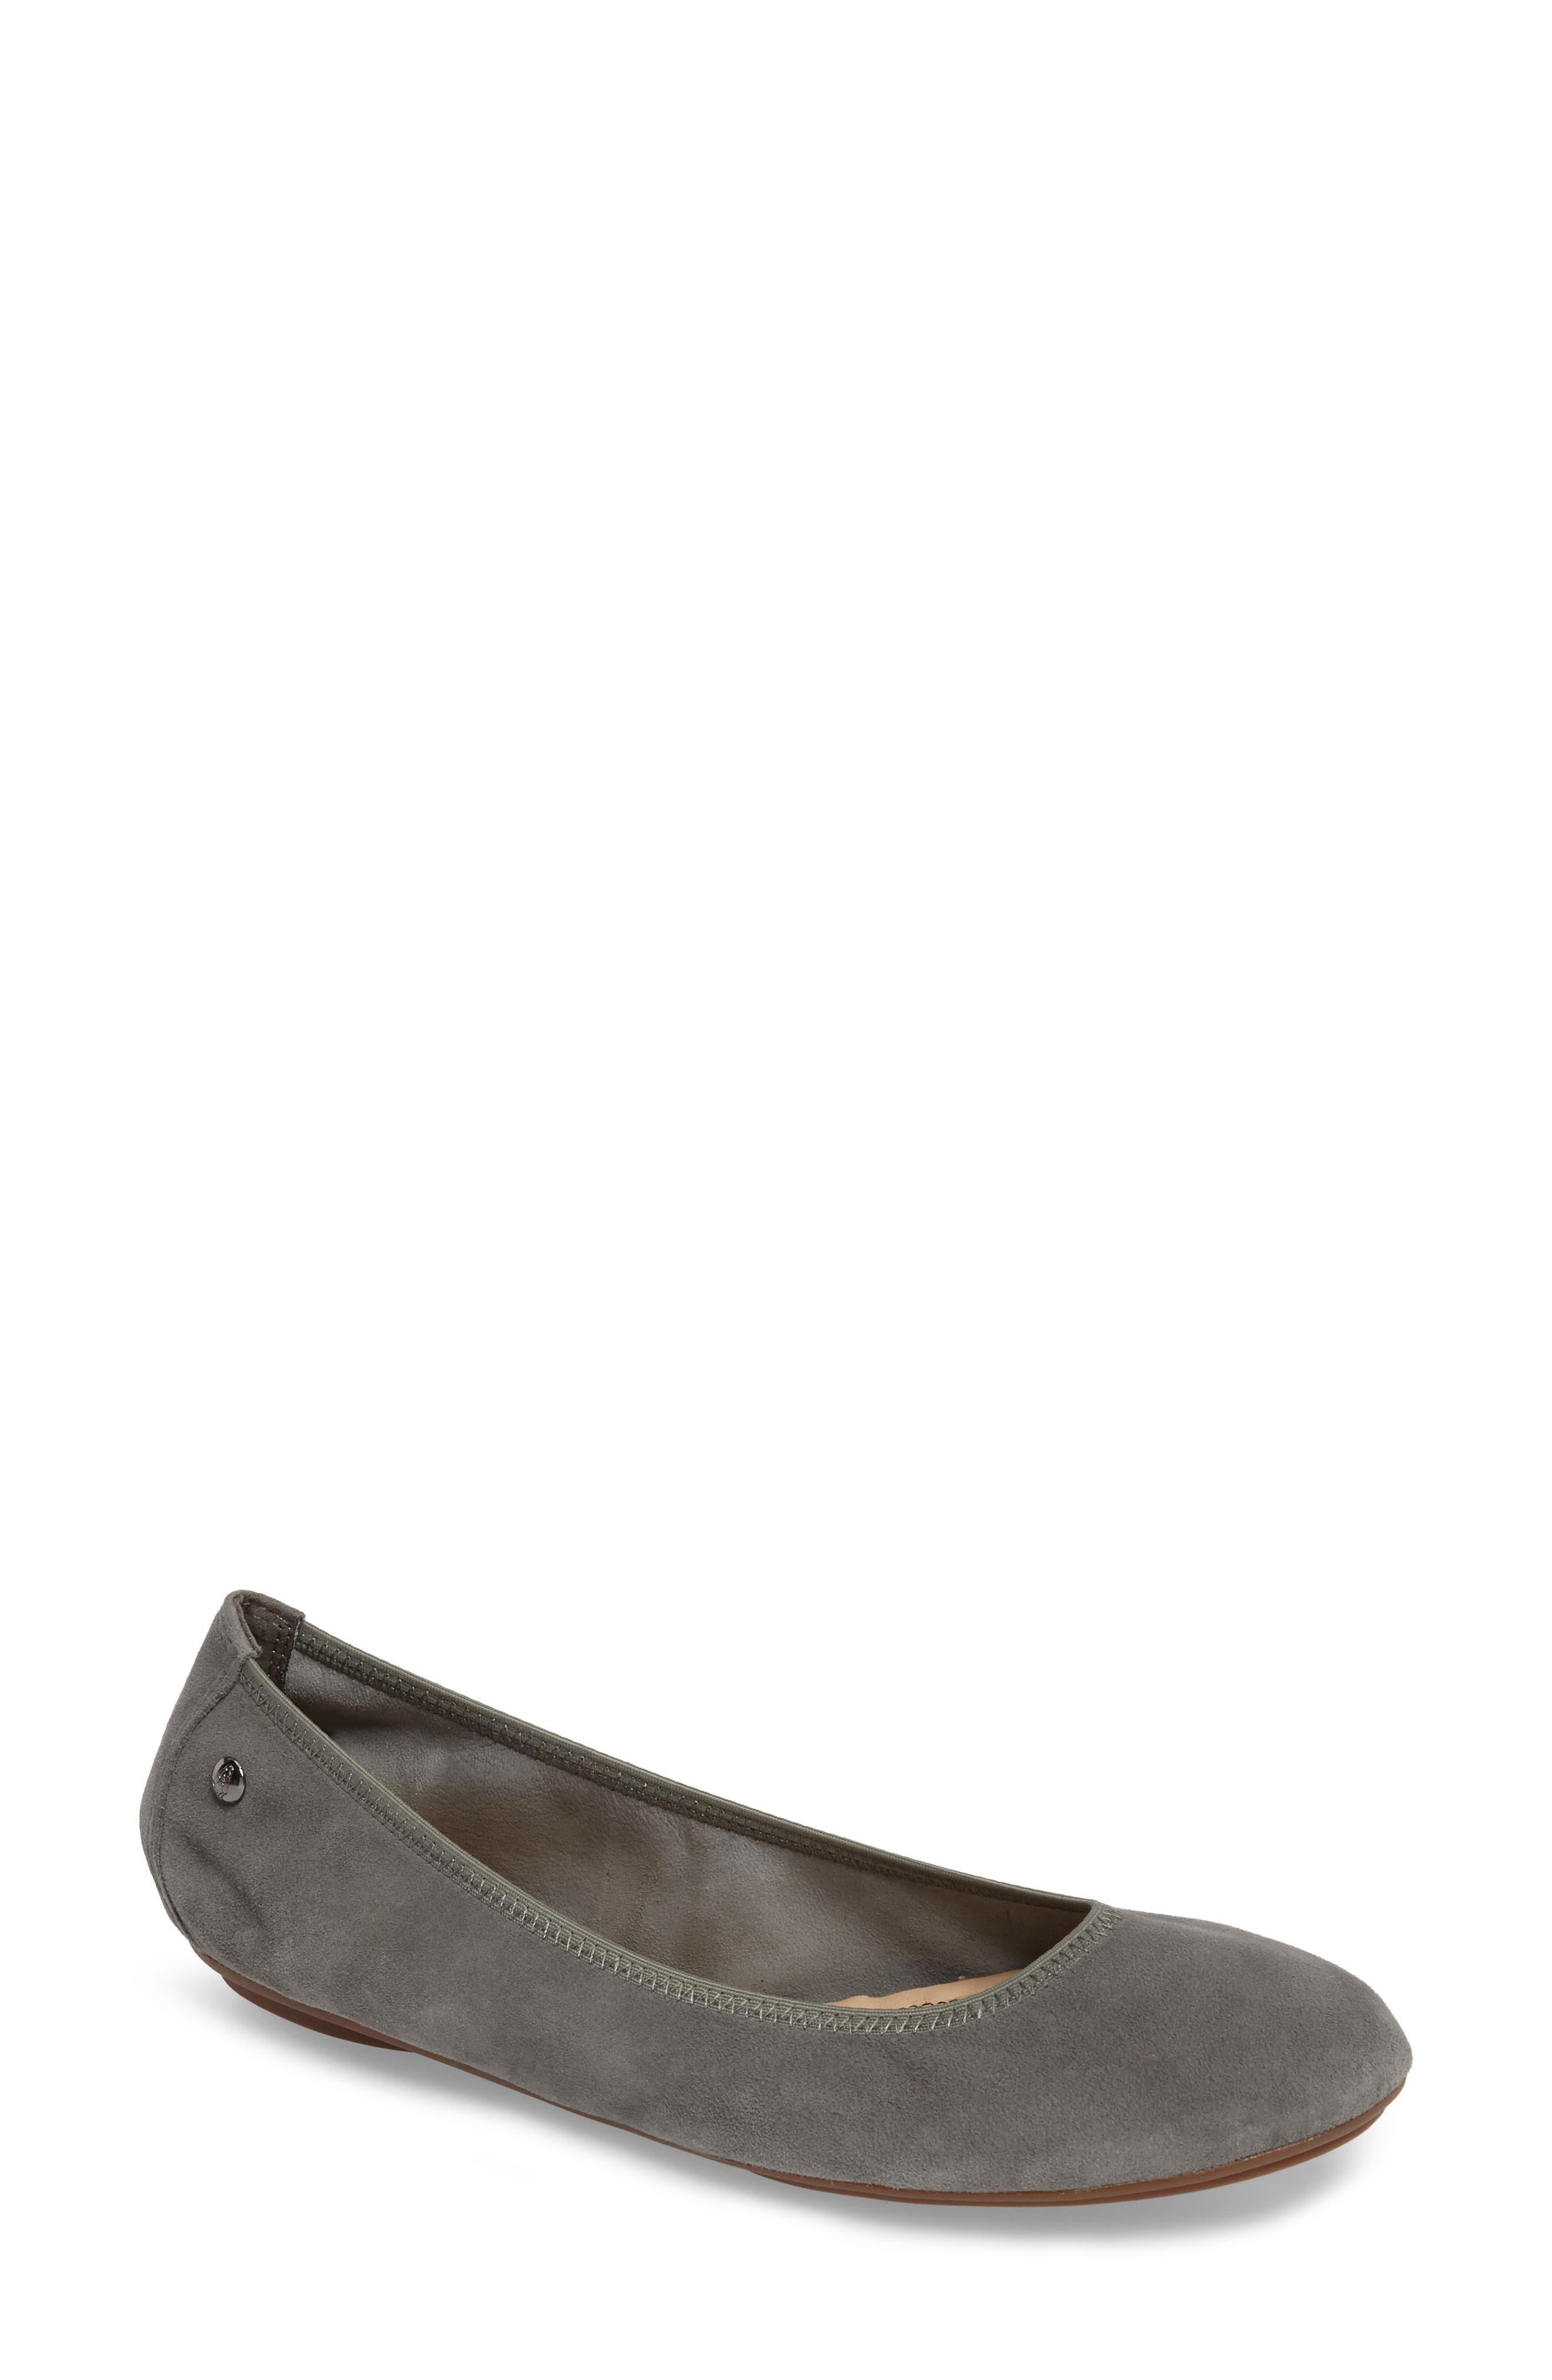 'Chaste' Ballet Flat,                         Main,                         color, Dusty Green Suede